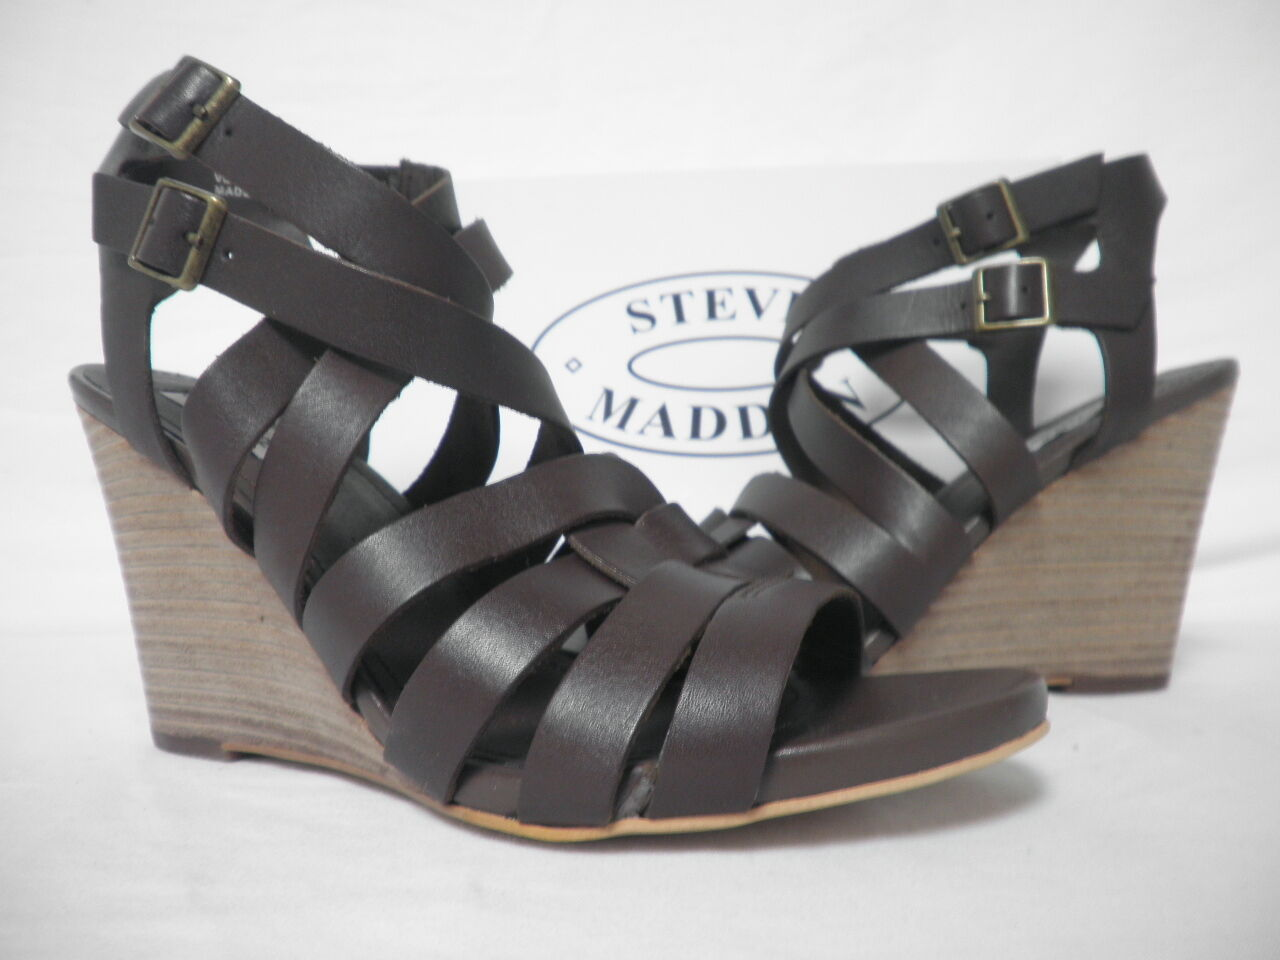 Steve Steve Steve Madden Size 10 M Venis Chocolate Leather Open Toe Wedges New Womens shoes db2262